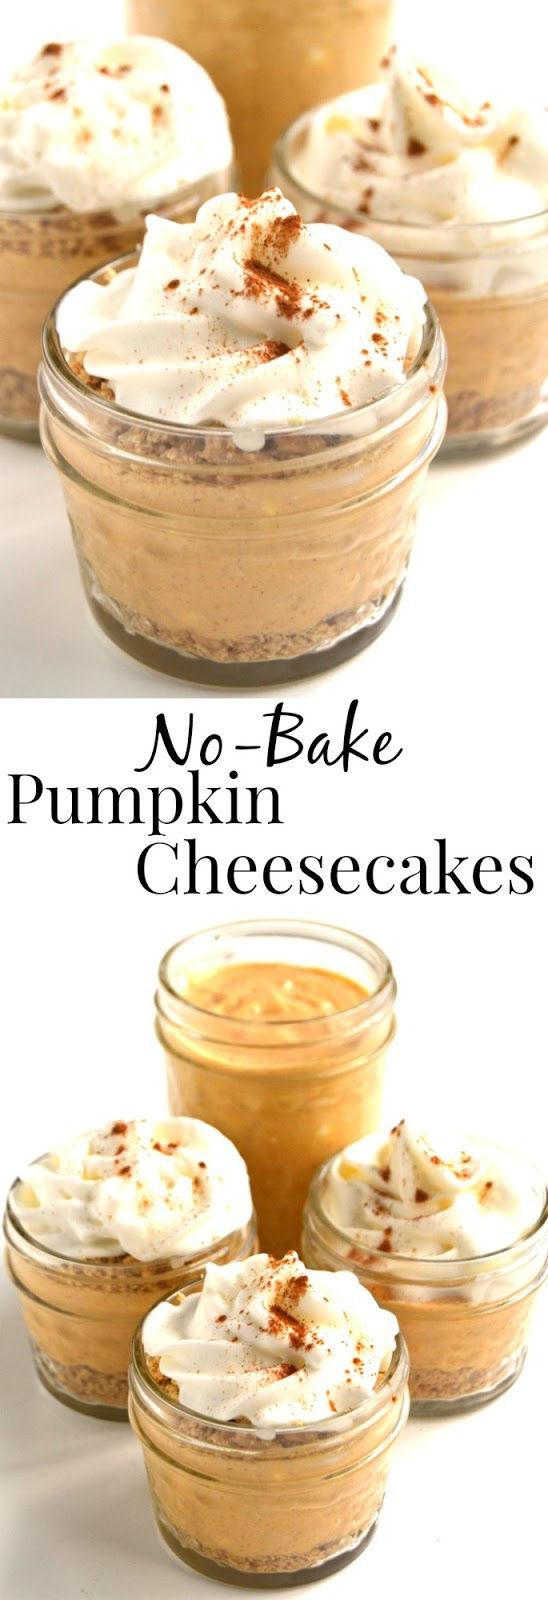 No-Bake Pumpkin Cheesecakes take 10 minutes to make and are much healthier than your typical cheesecake! Served in little jars, they are the perfect dessert for fall! www.nutritionistreviews.com